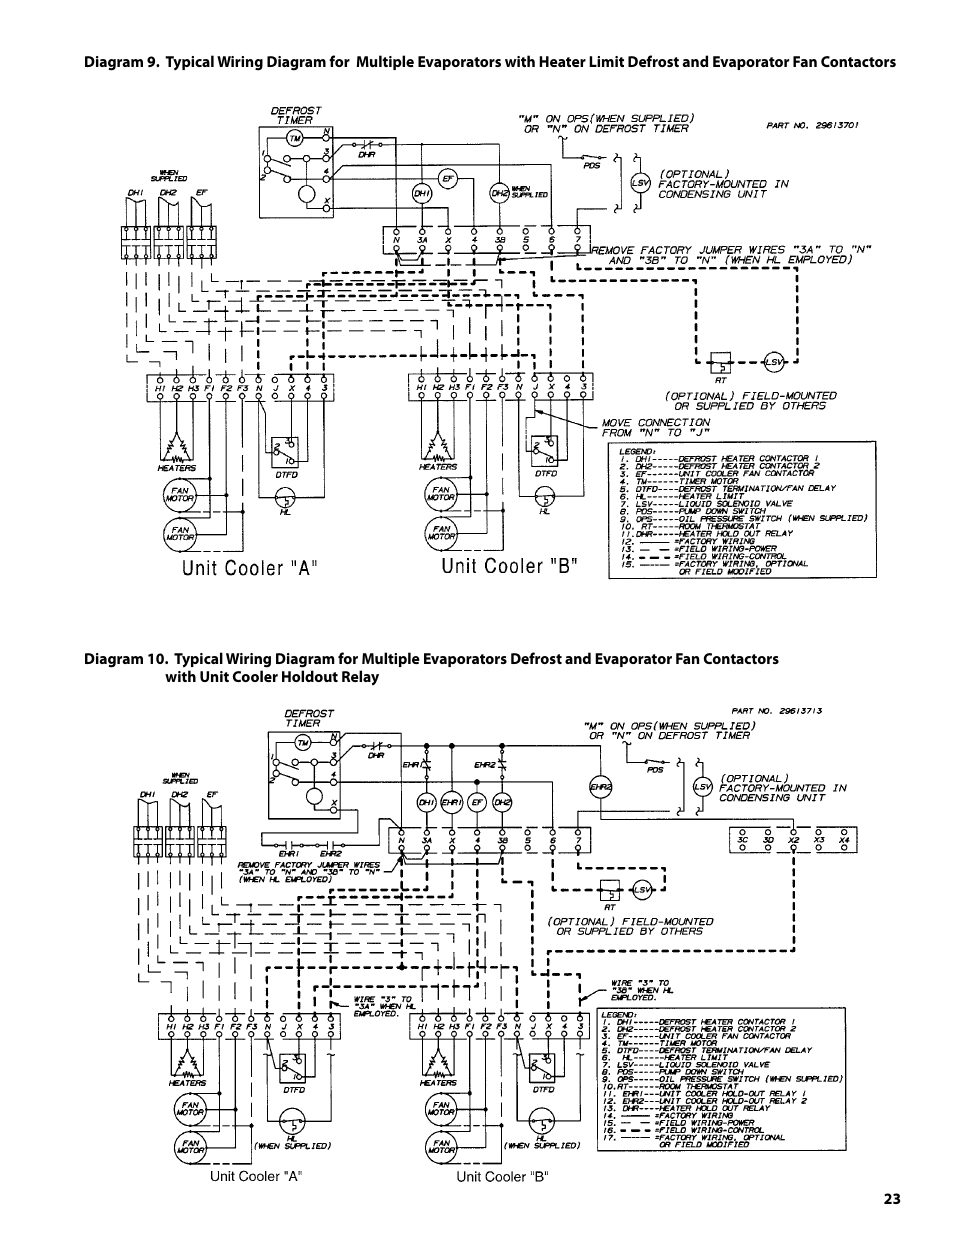 diagrams bohn wiring fezeere wiring diagrams rename bohn wiring diagrams bohn wiring diagrams #2